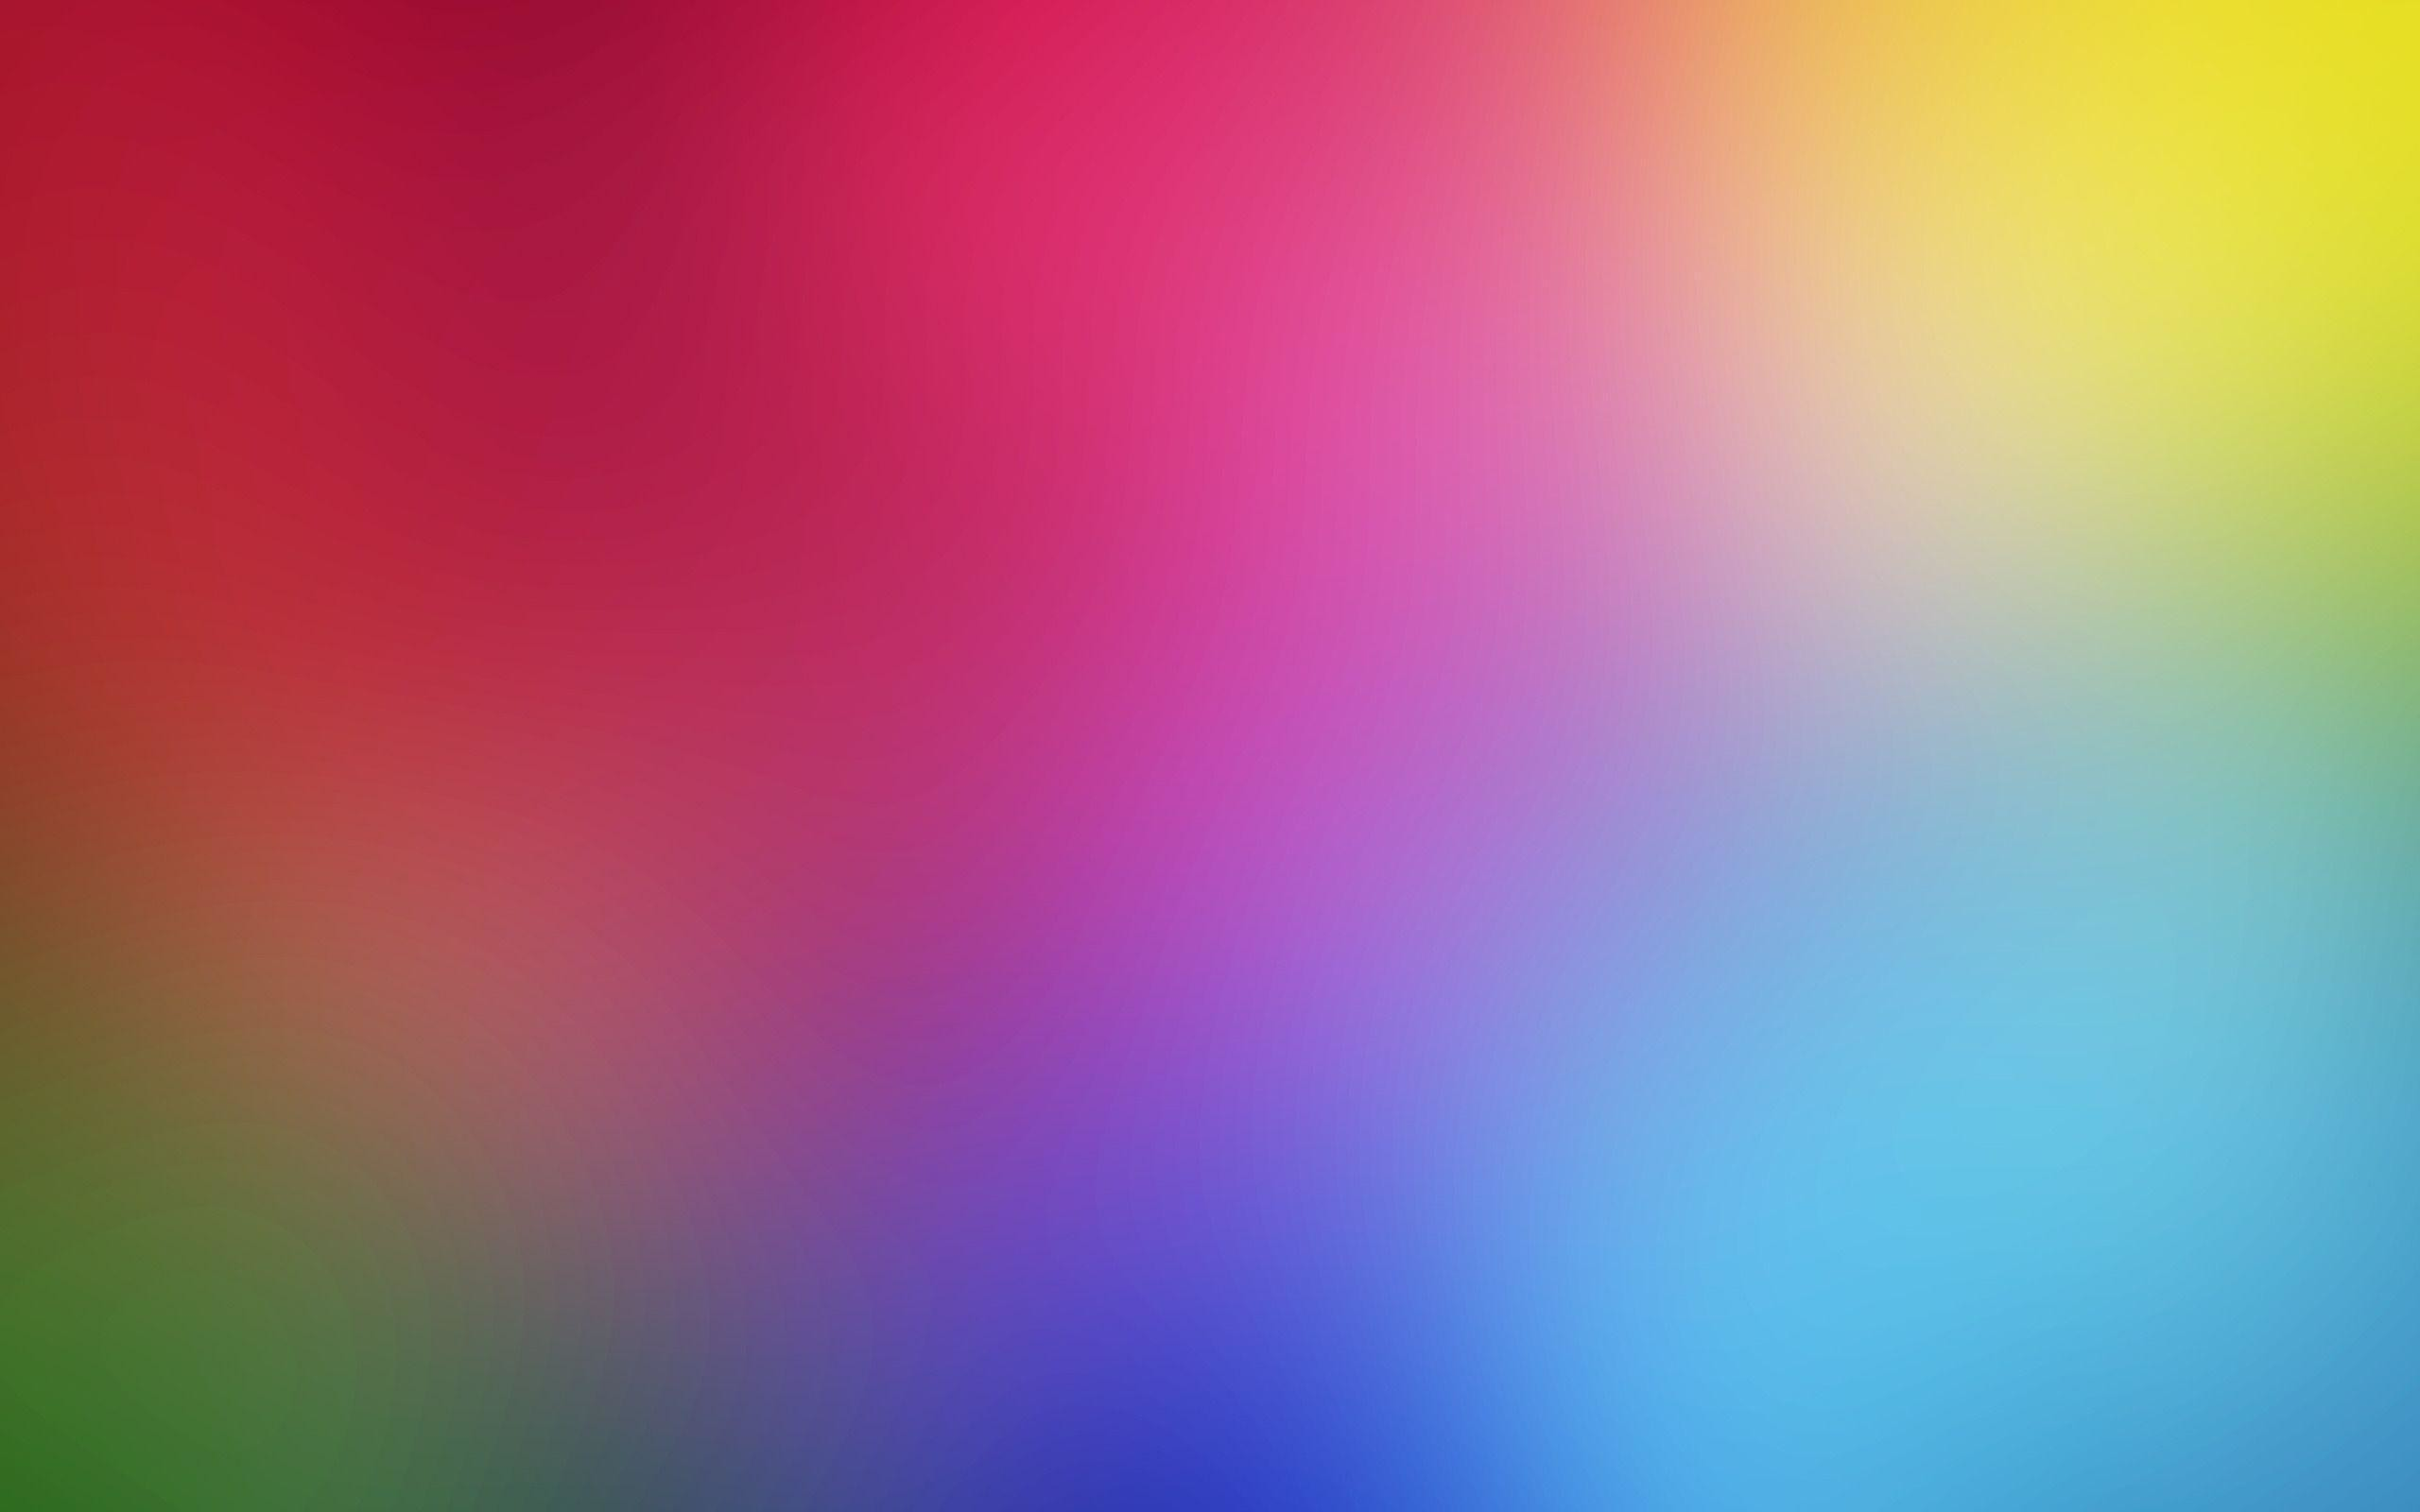 Mixed Rainbow Colored Background Photo and Desktop Wallpaper 2560×1600